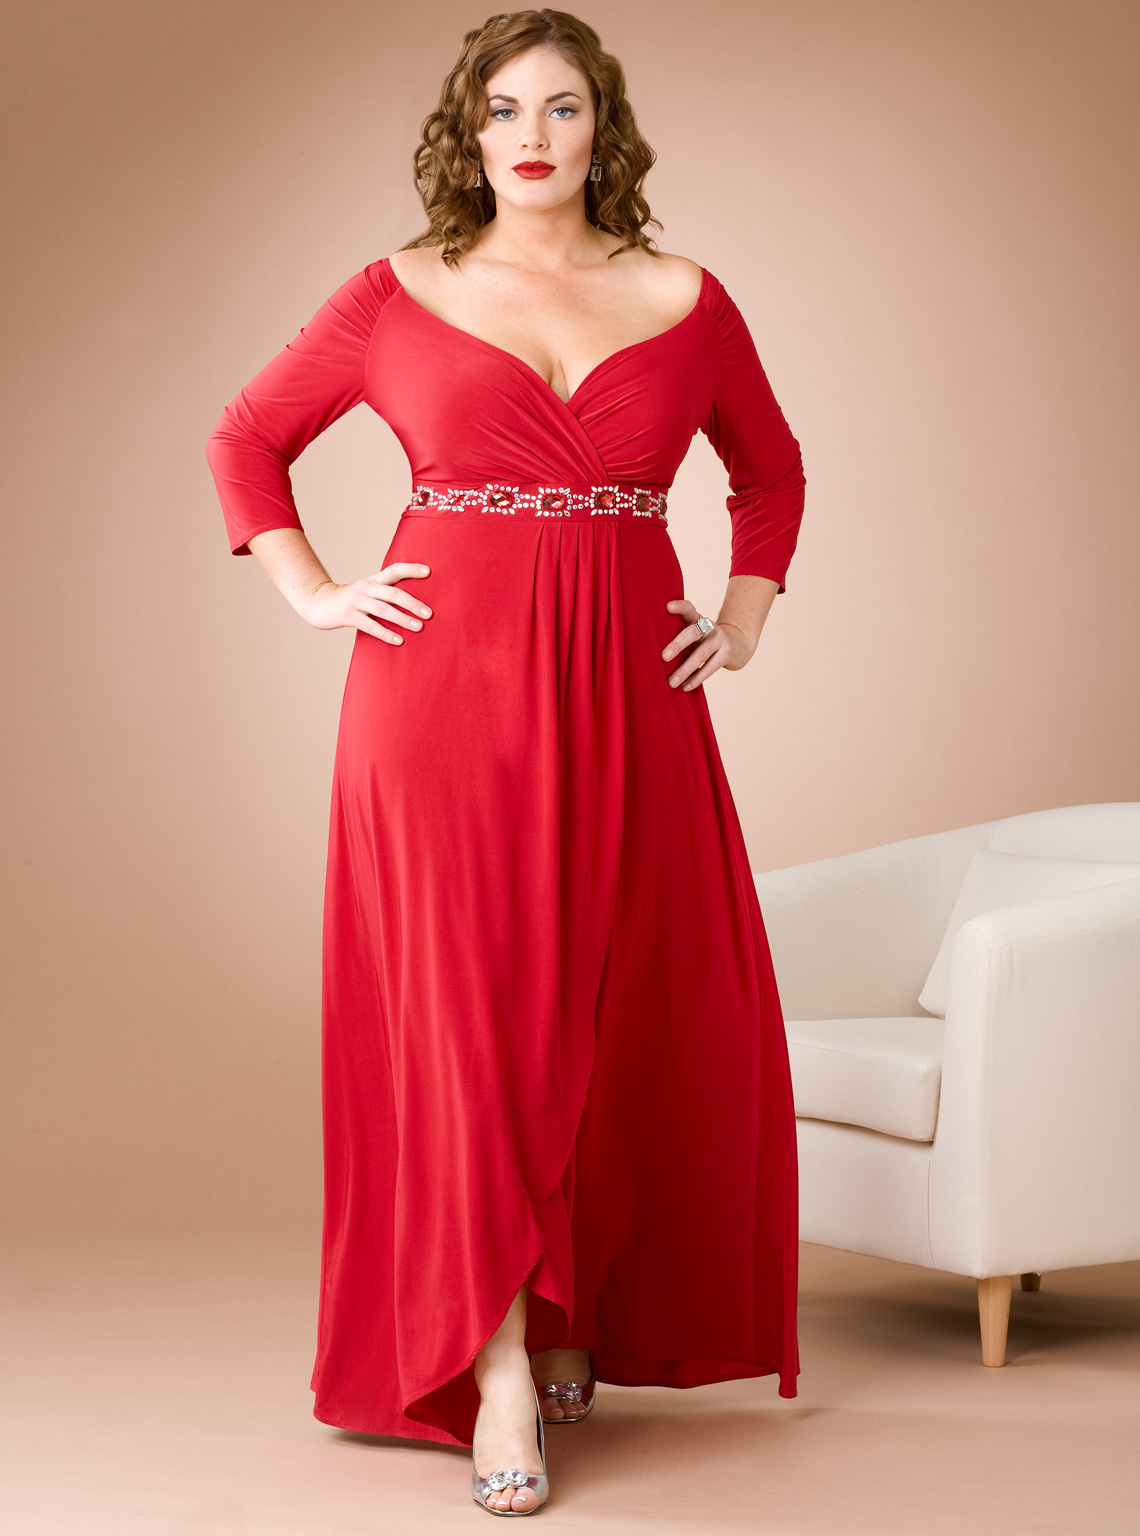 Plus size dresses red dress for less